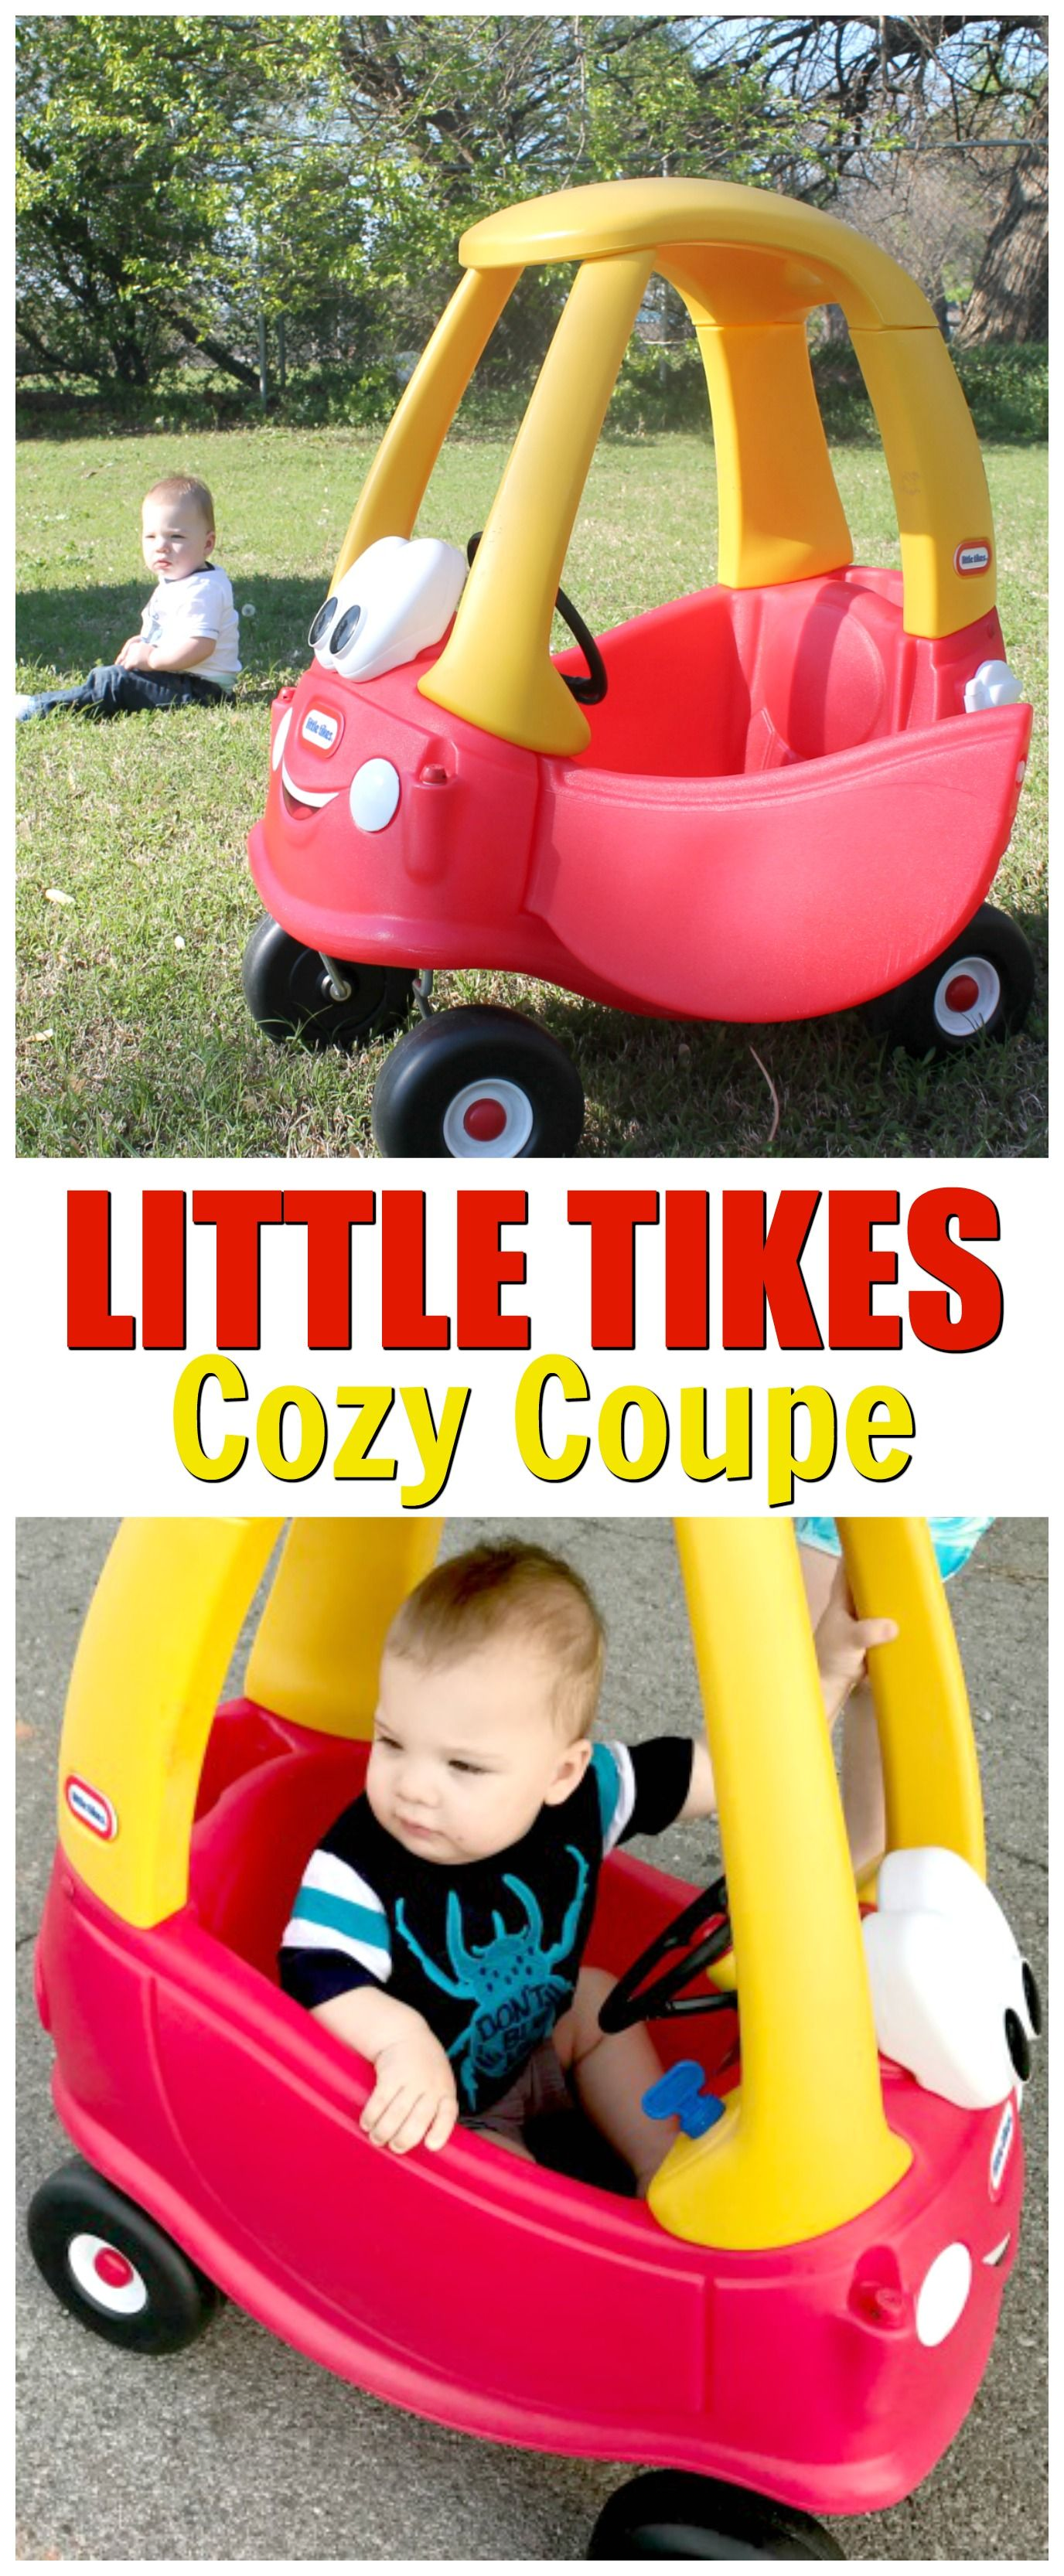 1 year baby toys images  Little Tikes Cozy Coupe Outdoor Riding Car For Toddlers This Riding